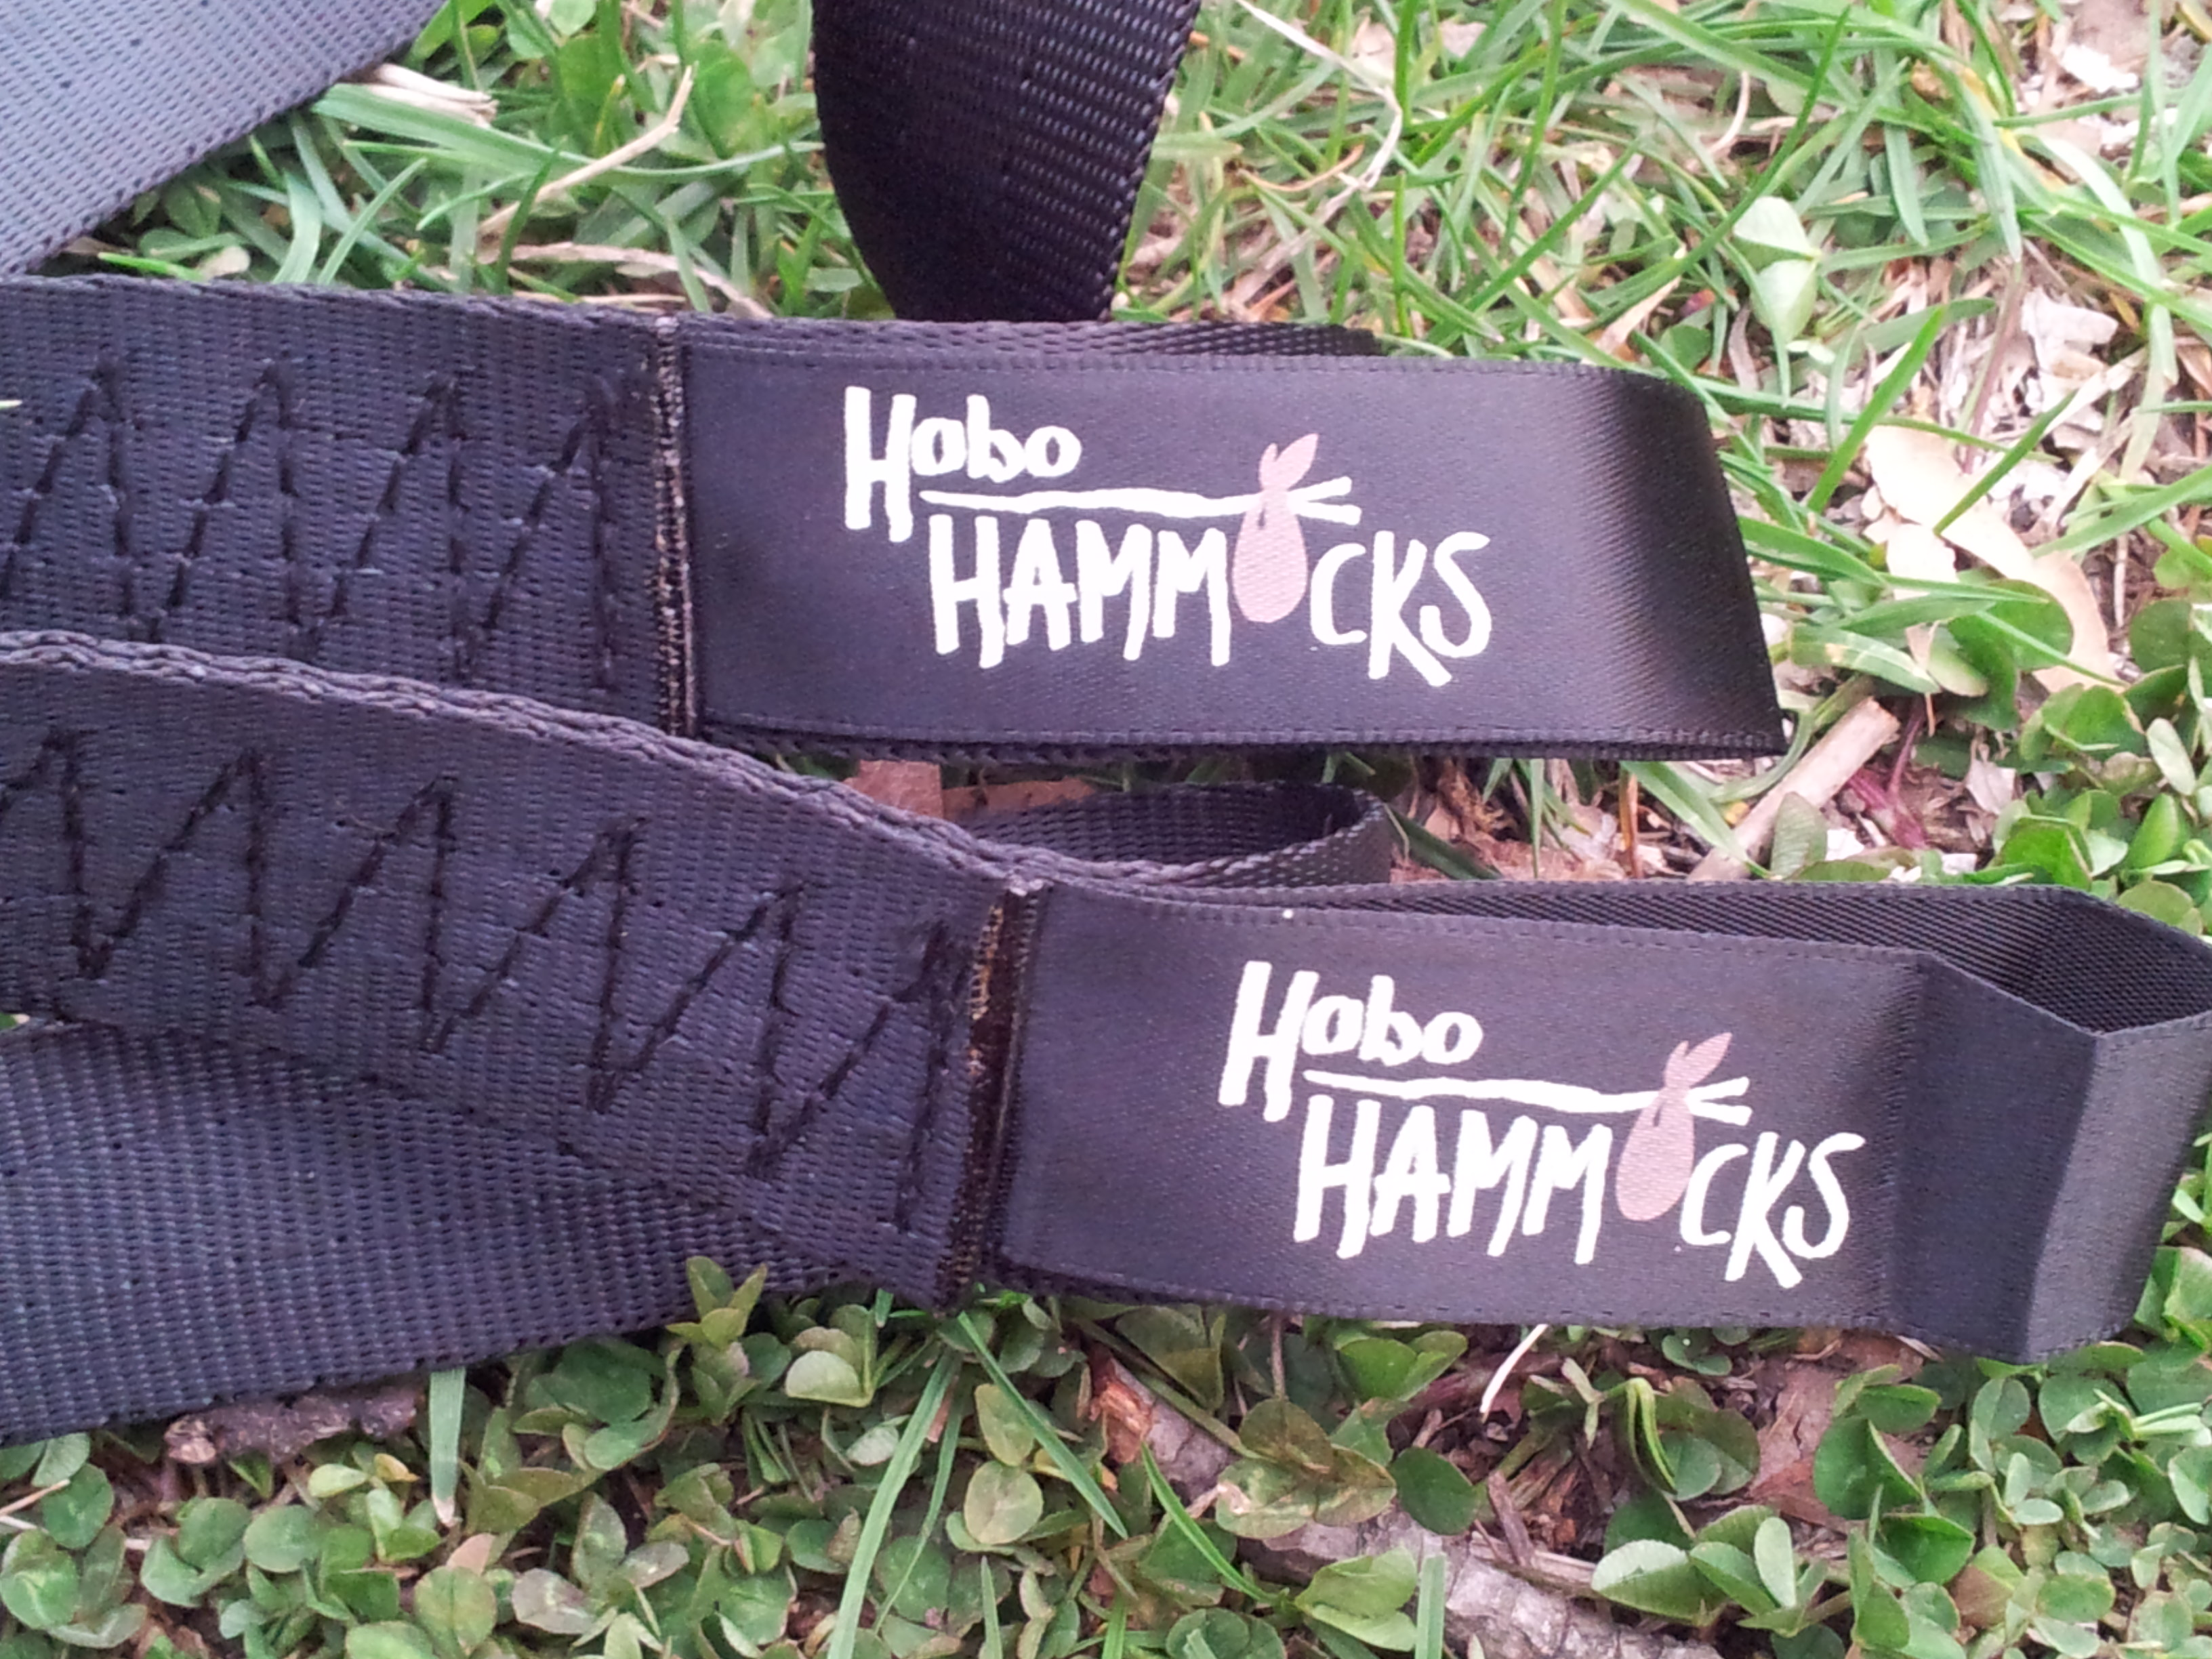 Hobo Hammock Vs Eno Hammock Reviewed Side By Side Video Post